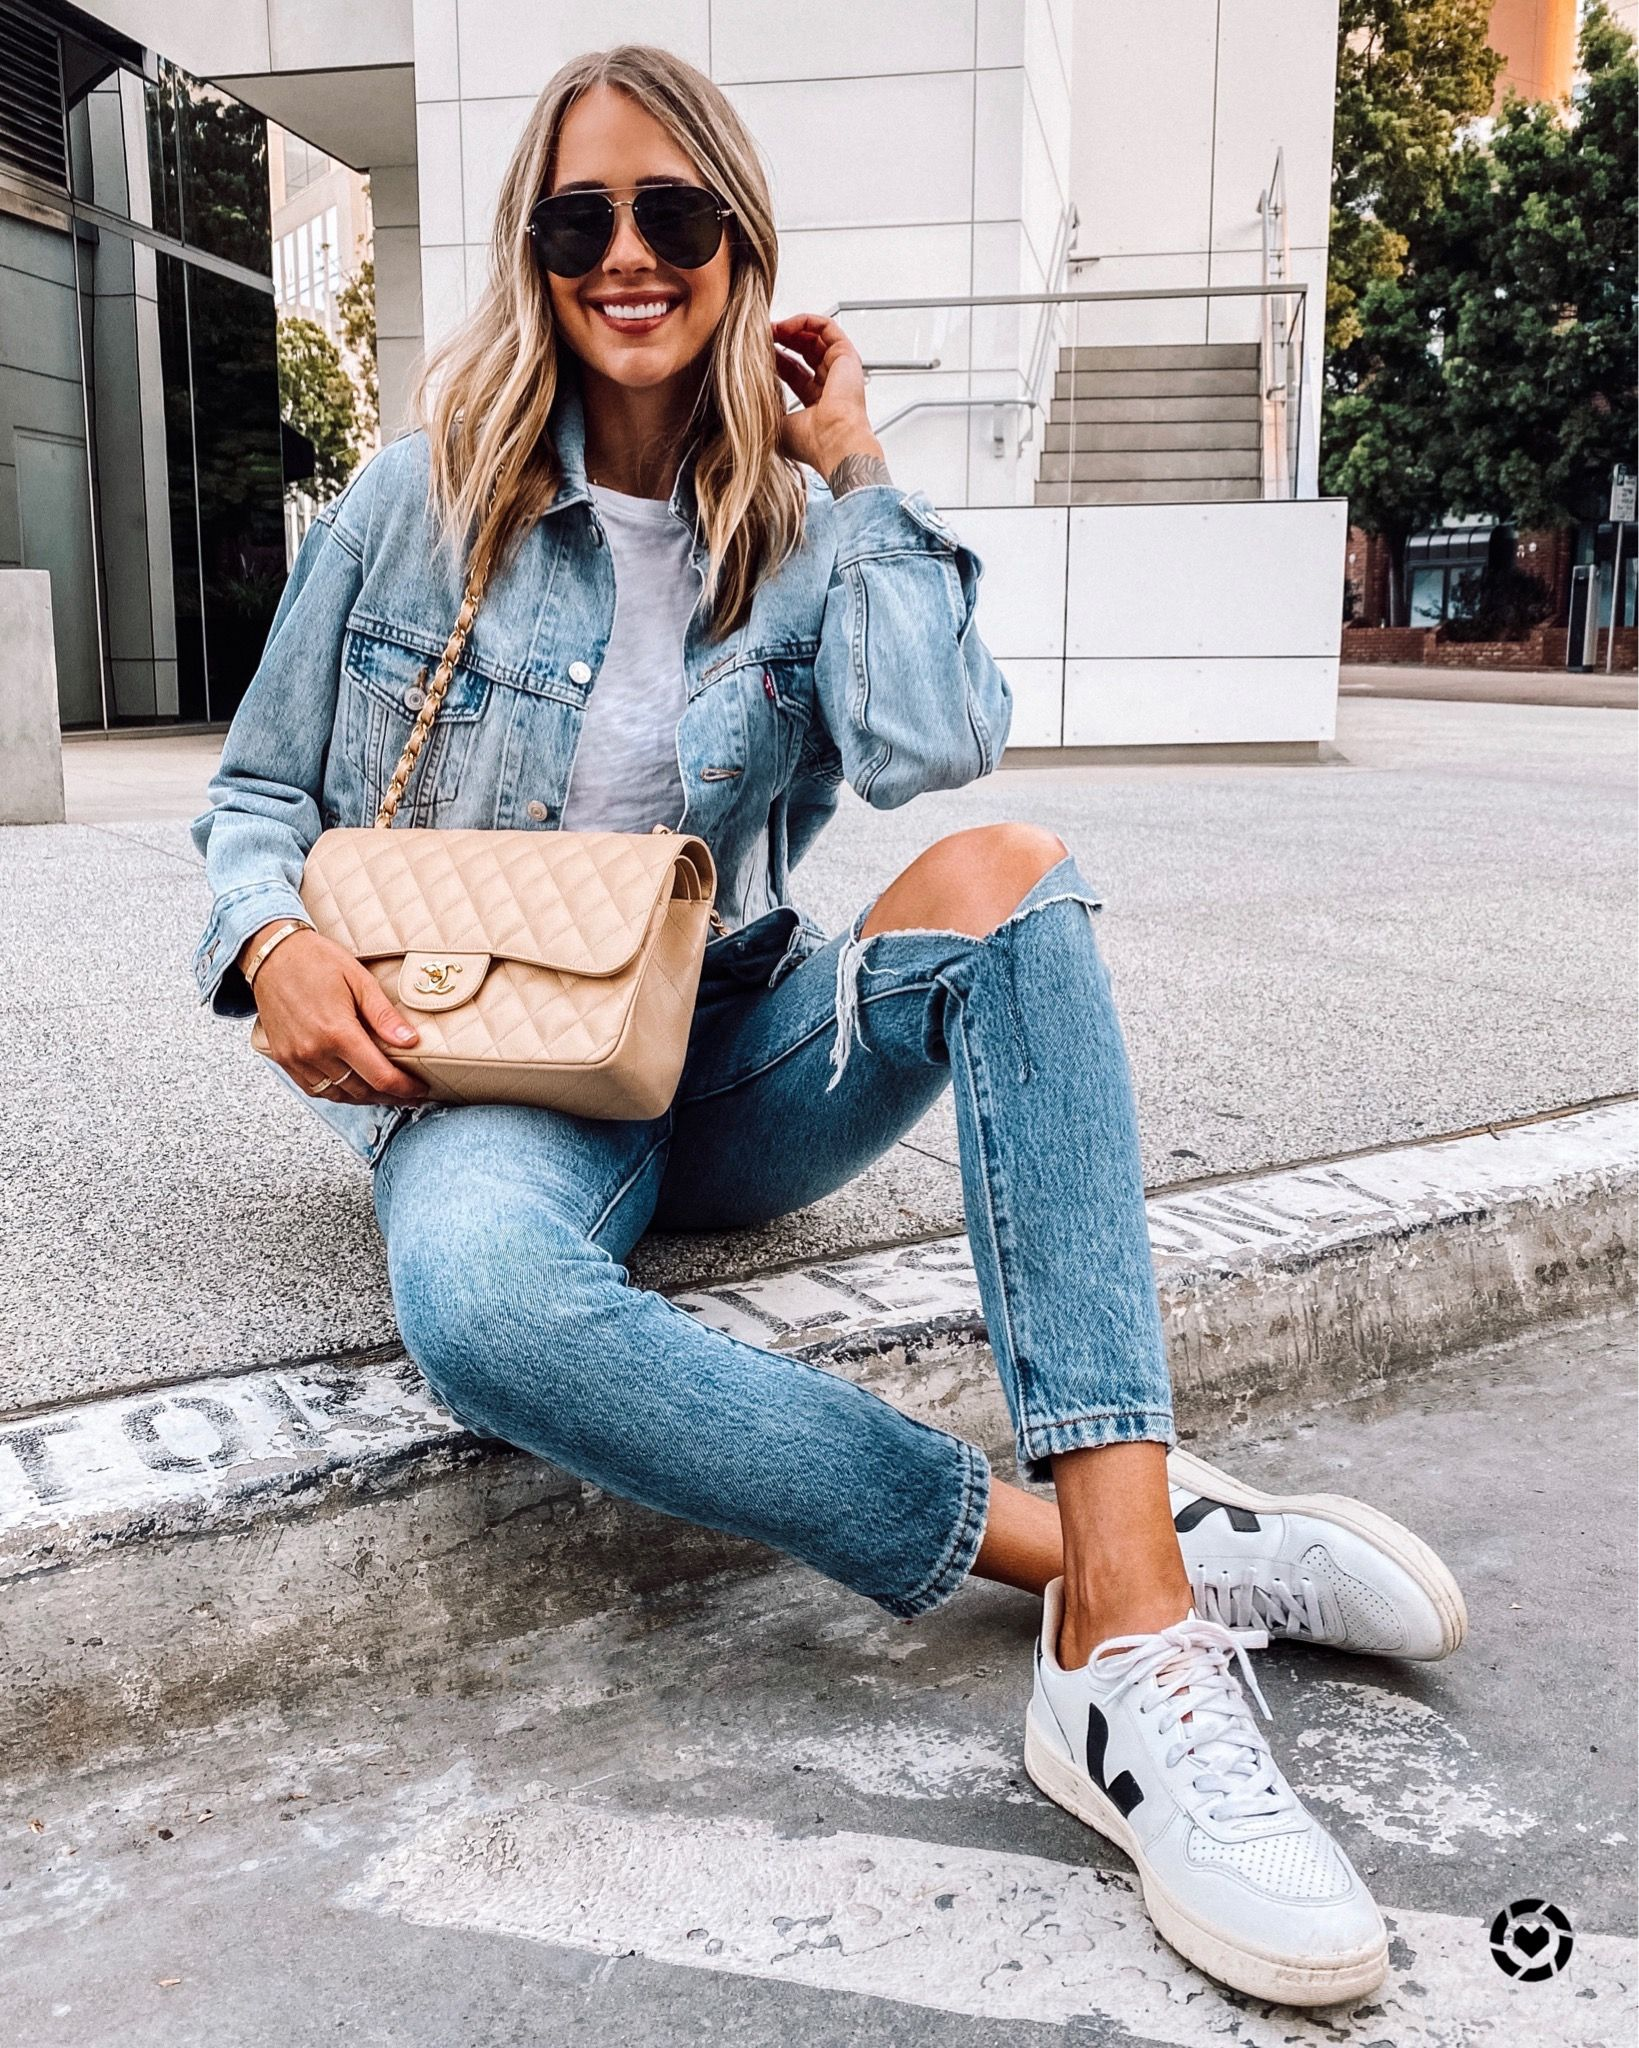 Jean Jacket Outfit Jeans And Jean Jacket Jeans And Denim Jacket Ripped Jeans And Jean Jacket Fashion Jackson Casual Weekend Outfit Adidas Outfit Women [ 2048 x 1639 Pixel ]